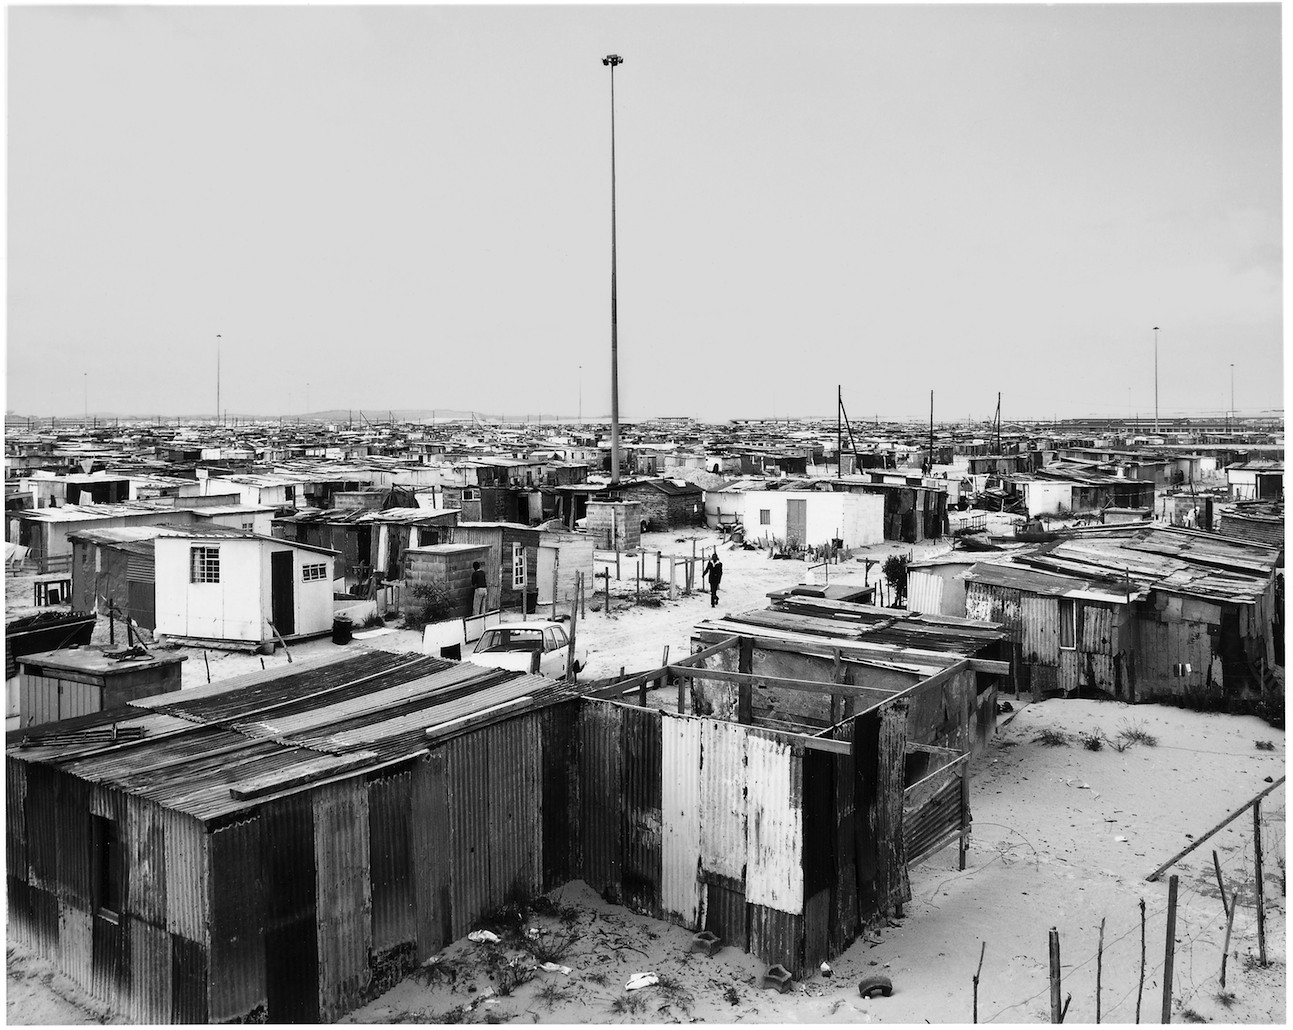 David Goldblatt. Structures: Flushing Meadows – so called because it had water-borne sanitation – and lighting masts, Site B, Khayelitsha, Cape Town, Cape. 11. October 1987, 1987. Series: Structures. Courtesy The Walther Collection and Goodman Gallery, Johannesburg.